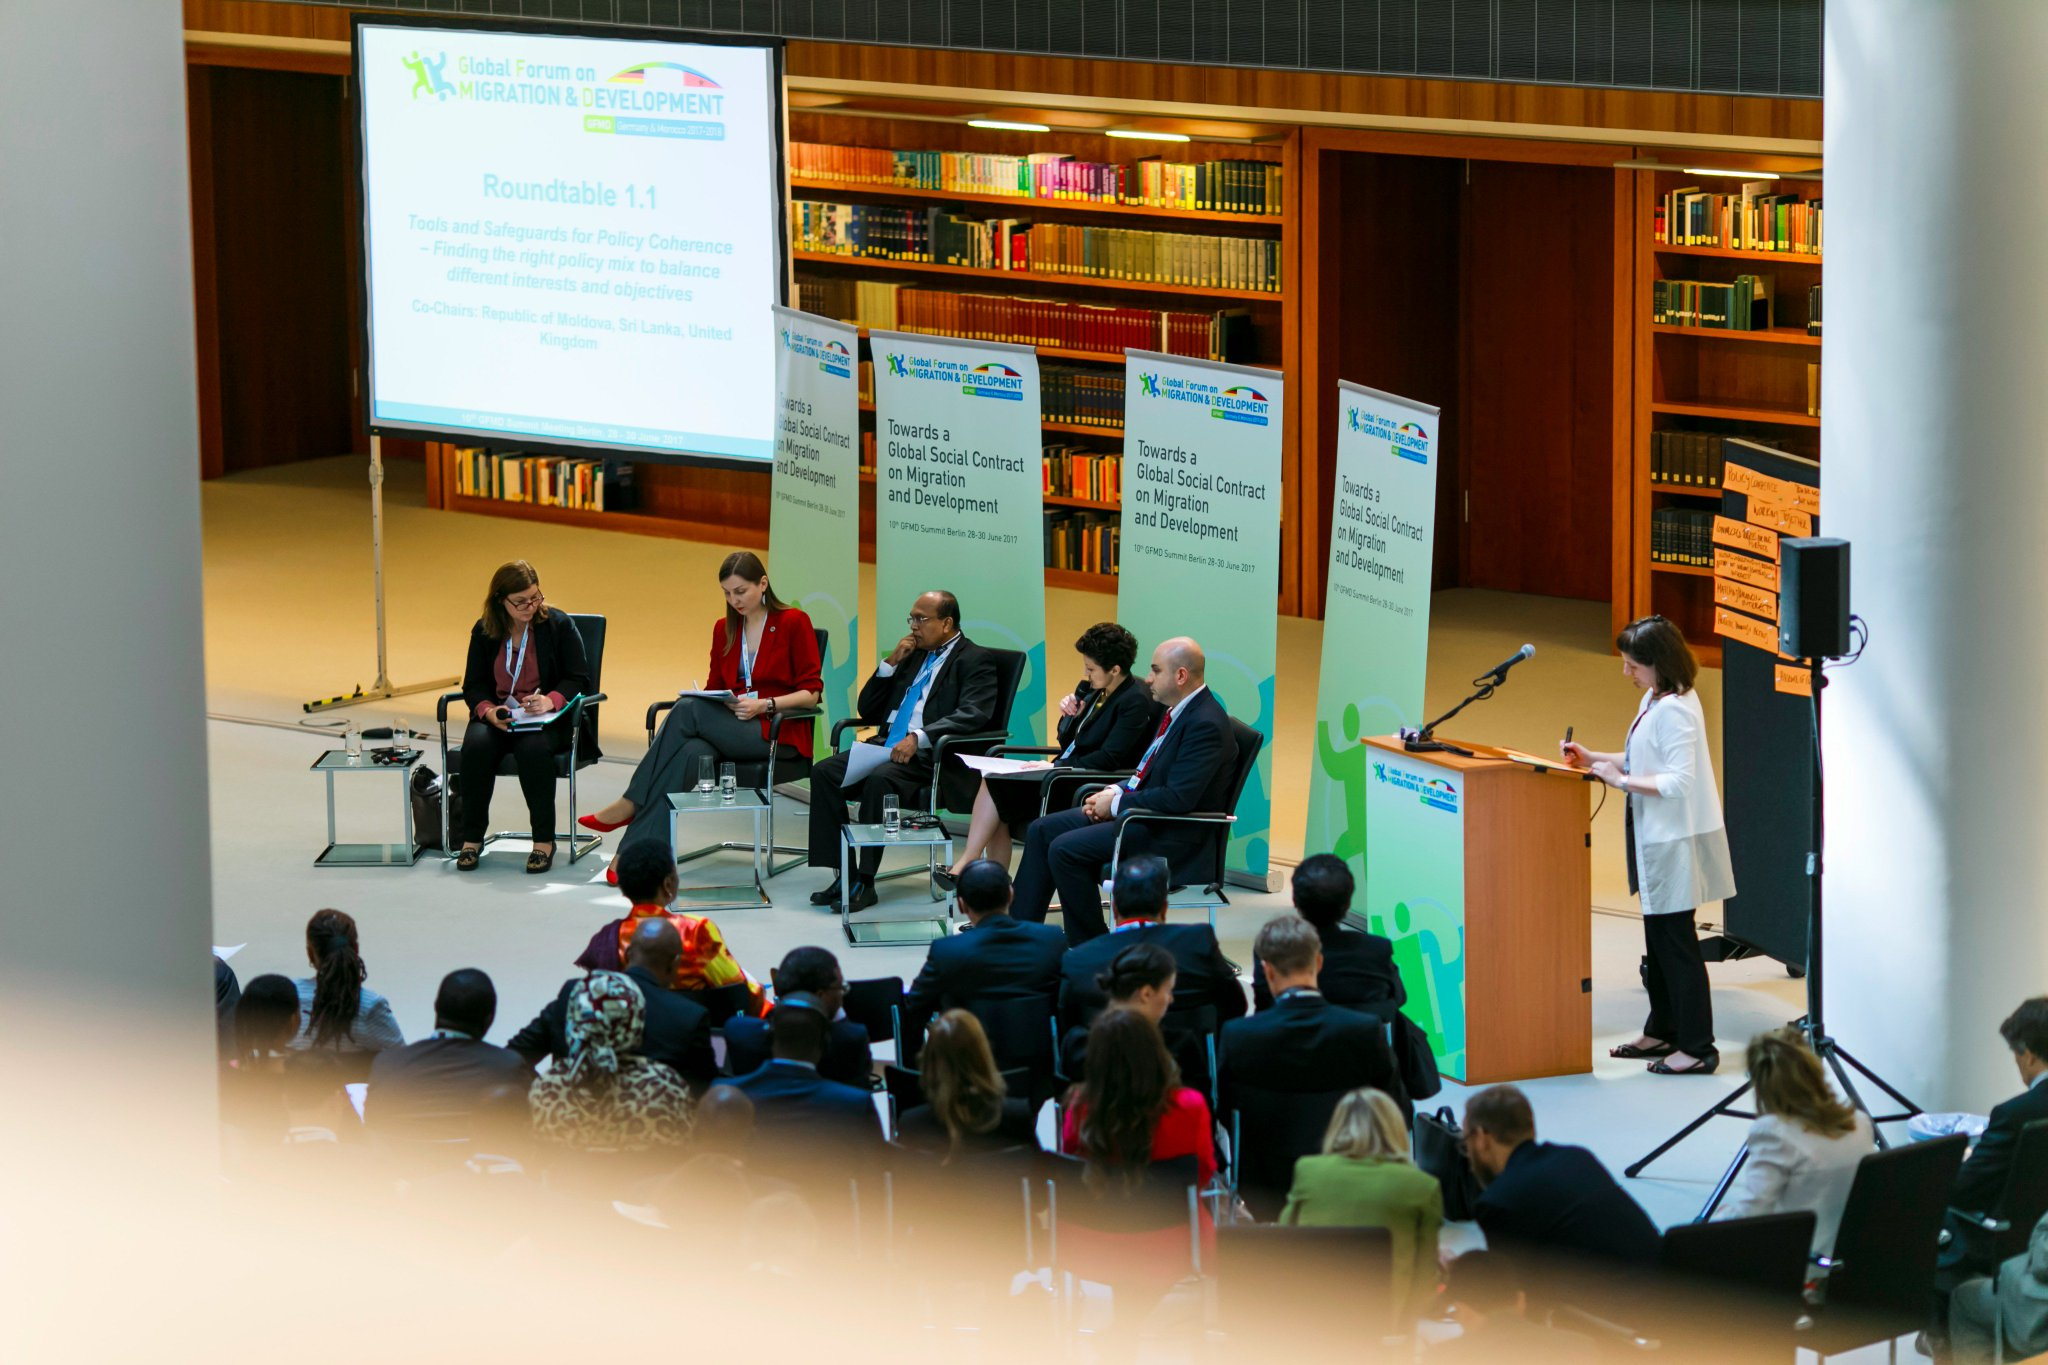 RT 1.1: Data collection improvement is needed to provide evidence-based and coherent policies on #migration and #development. #GFMD10 https://t.co/7YMZstd3jr